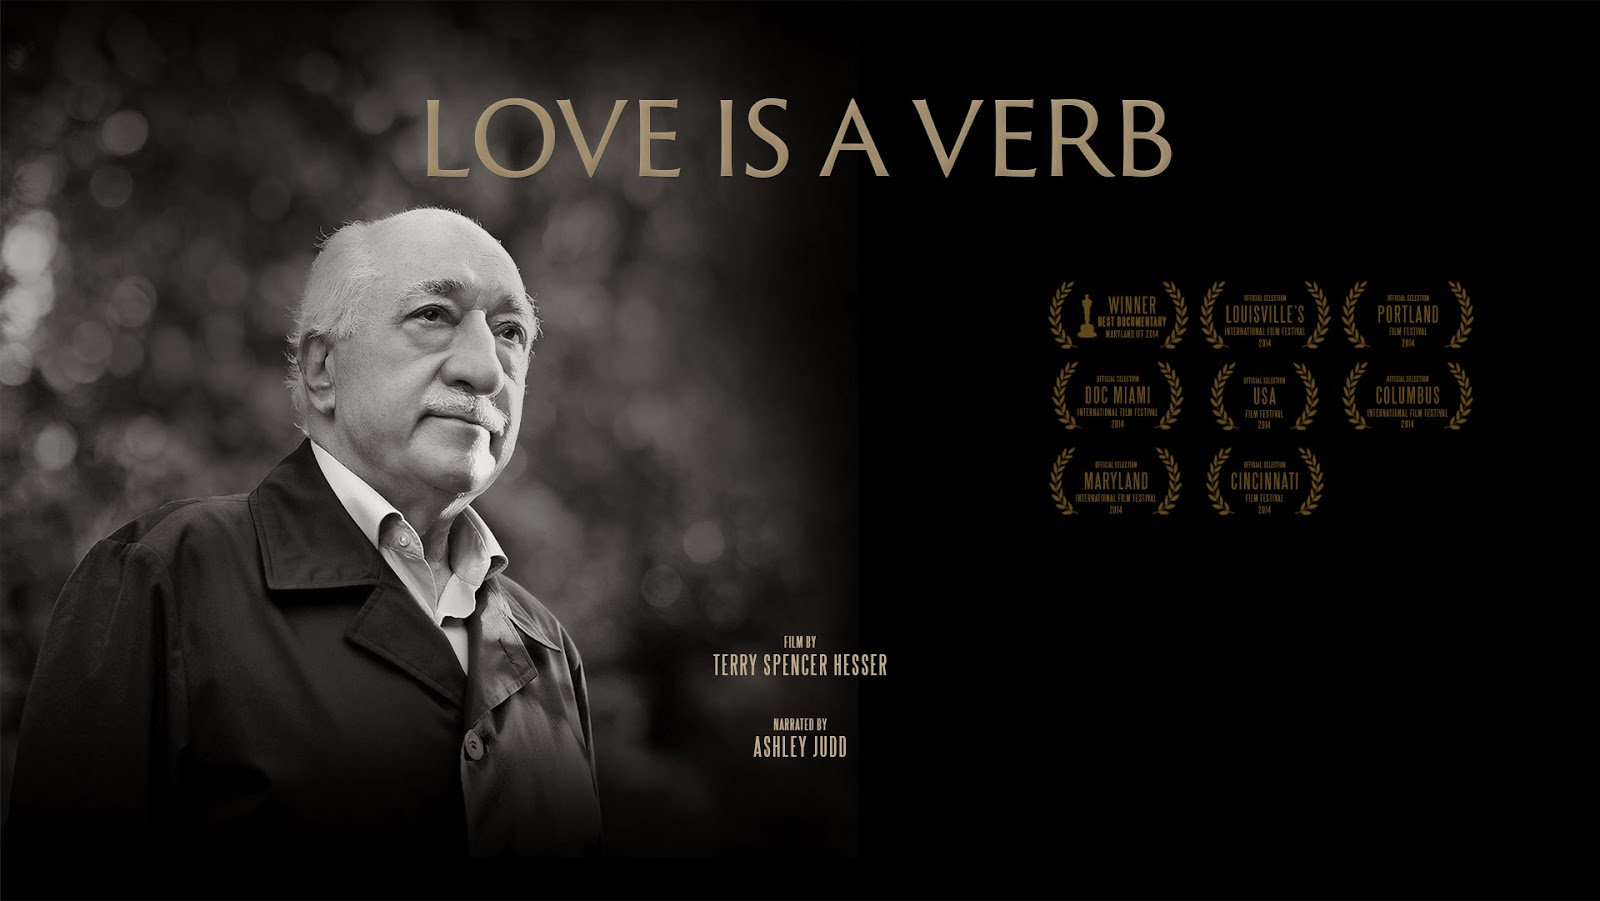 A documentary on Fethullah Gulen and the Hizmet movement, Love is a Verb